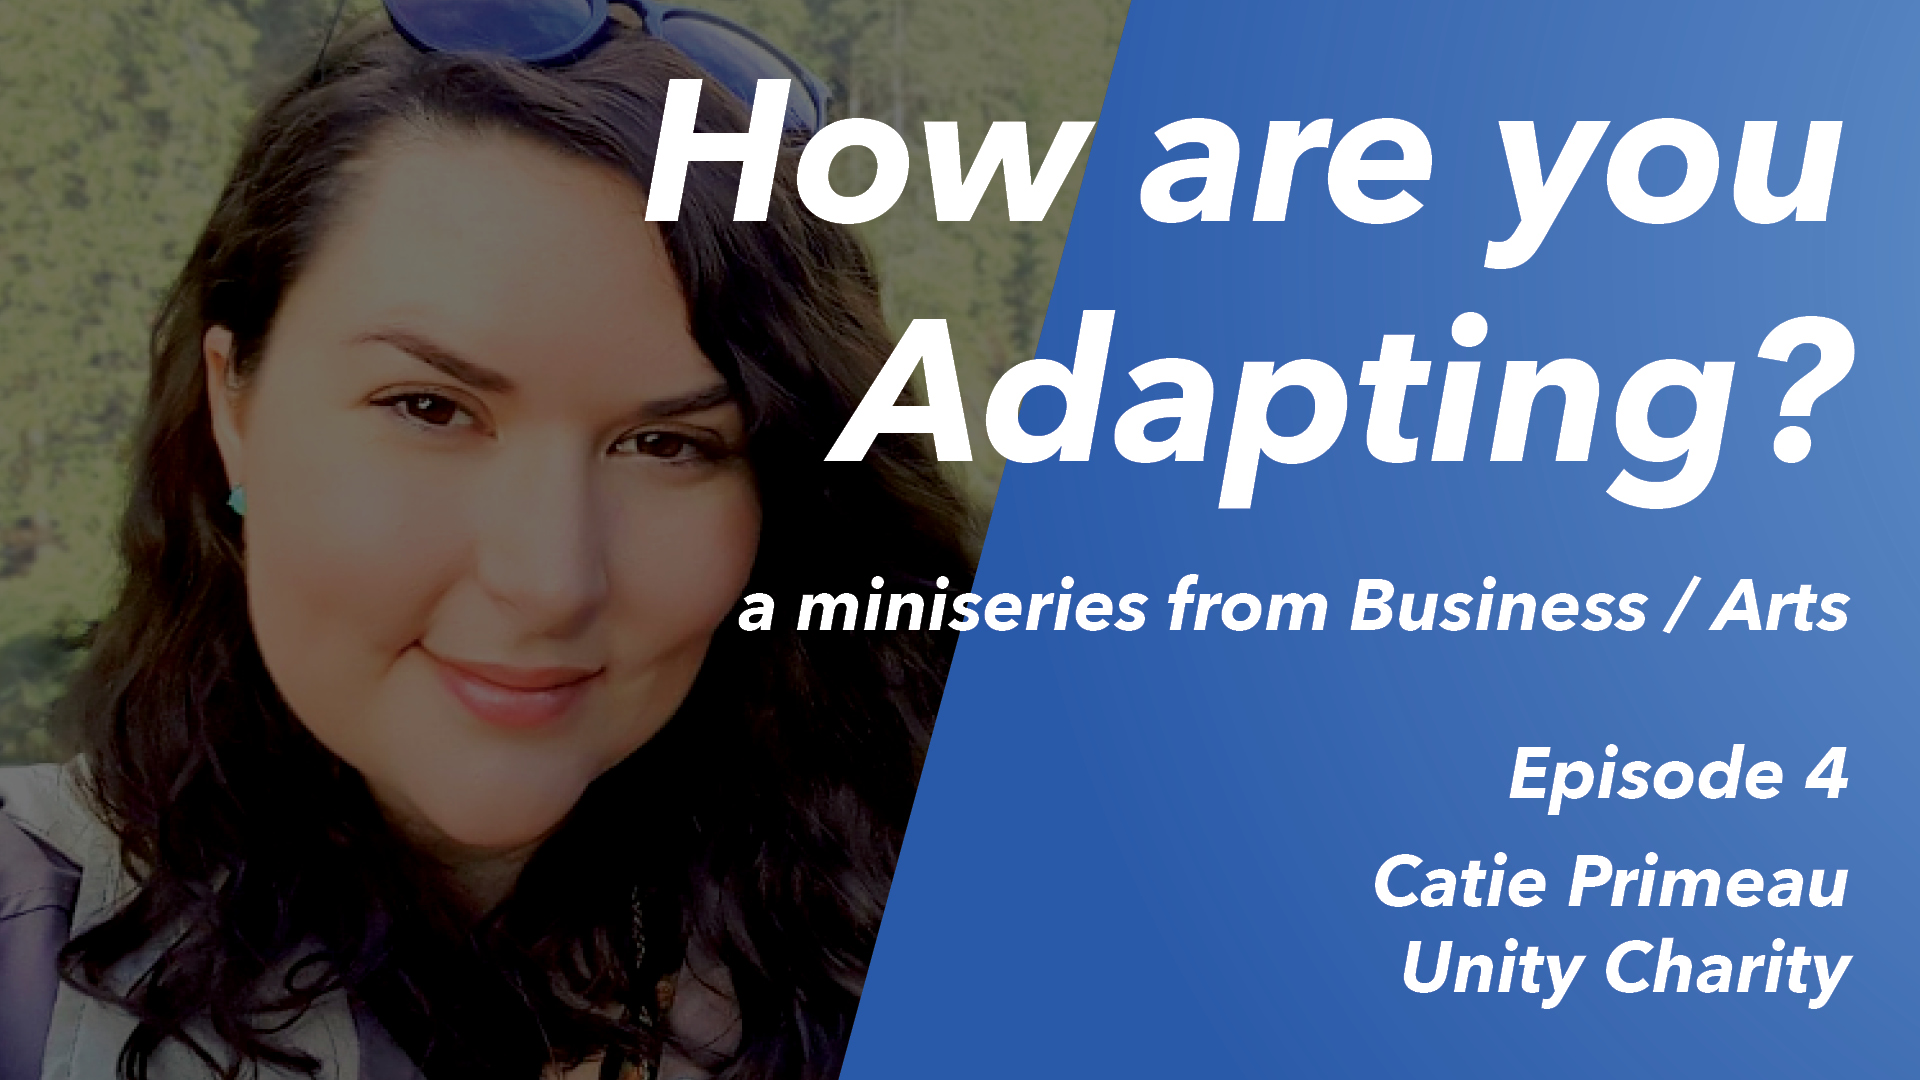 How are you Adapting? Ep 4 – Catie Primeau (Unity Charity)